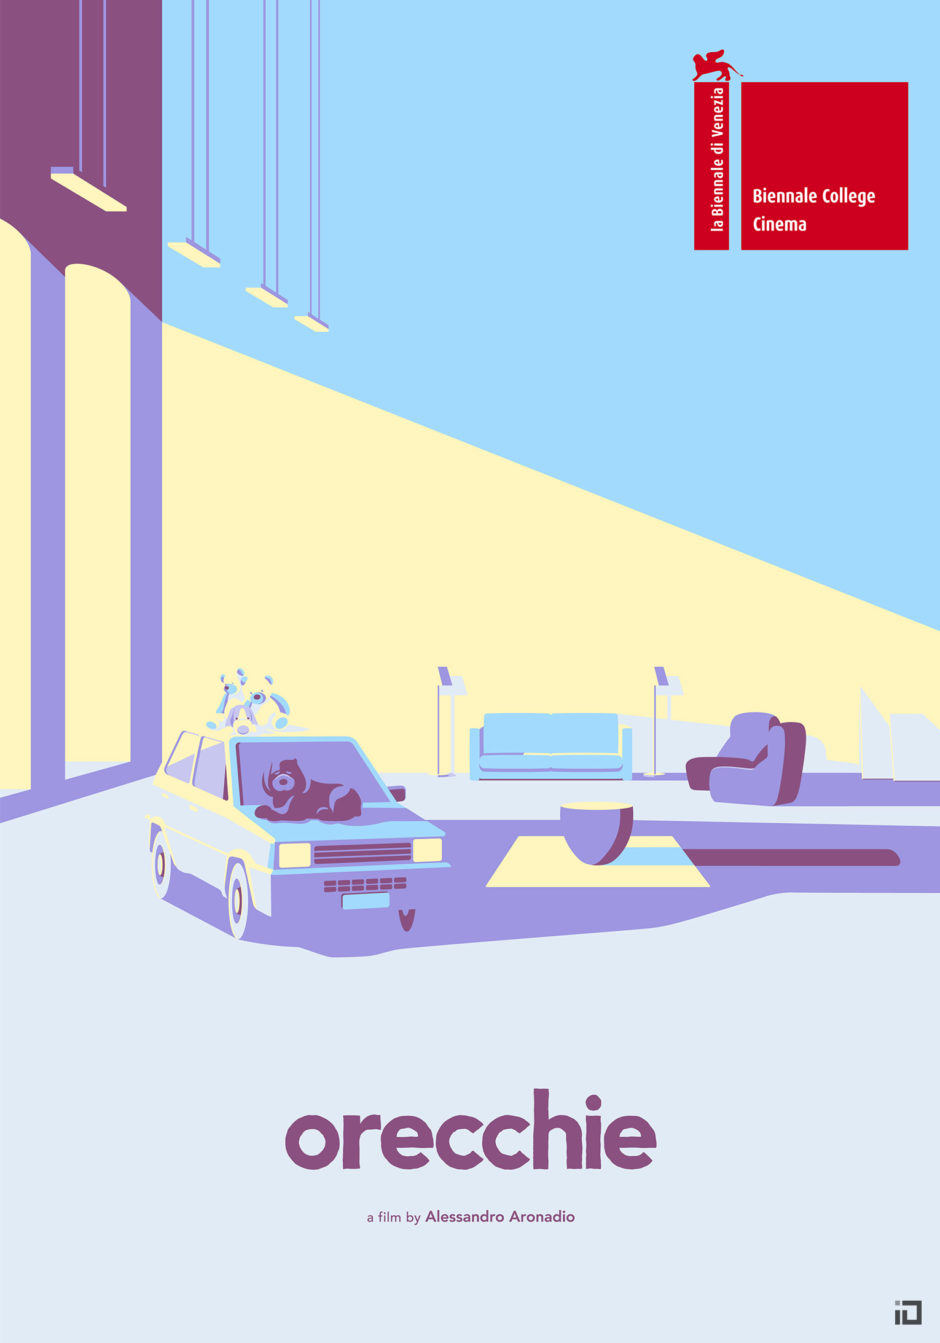 orecchie-official-iconographic-poster_biennale-2016